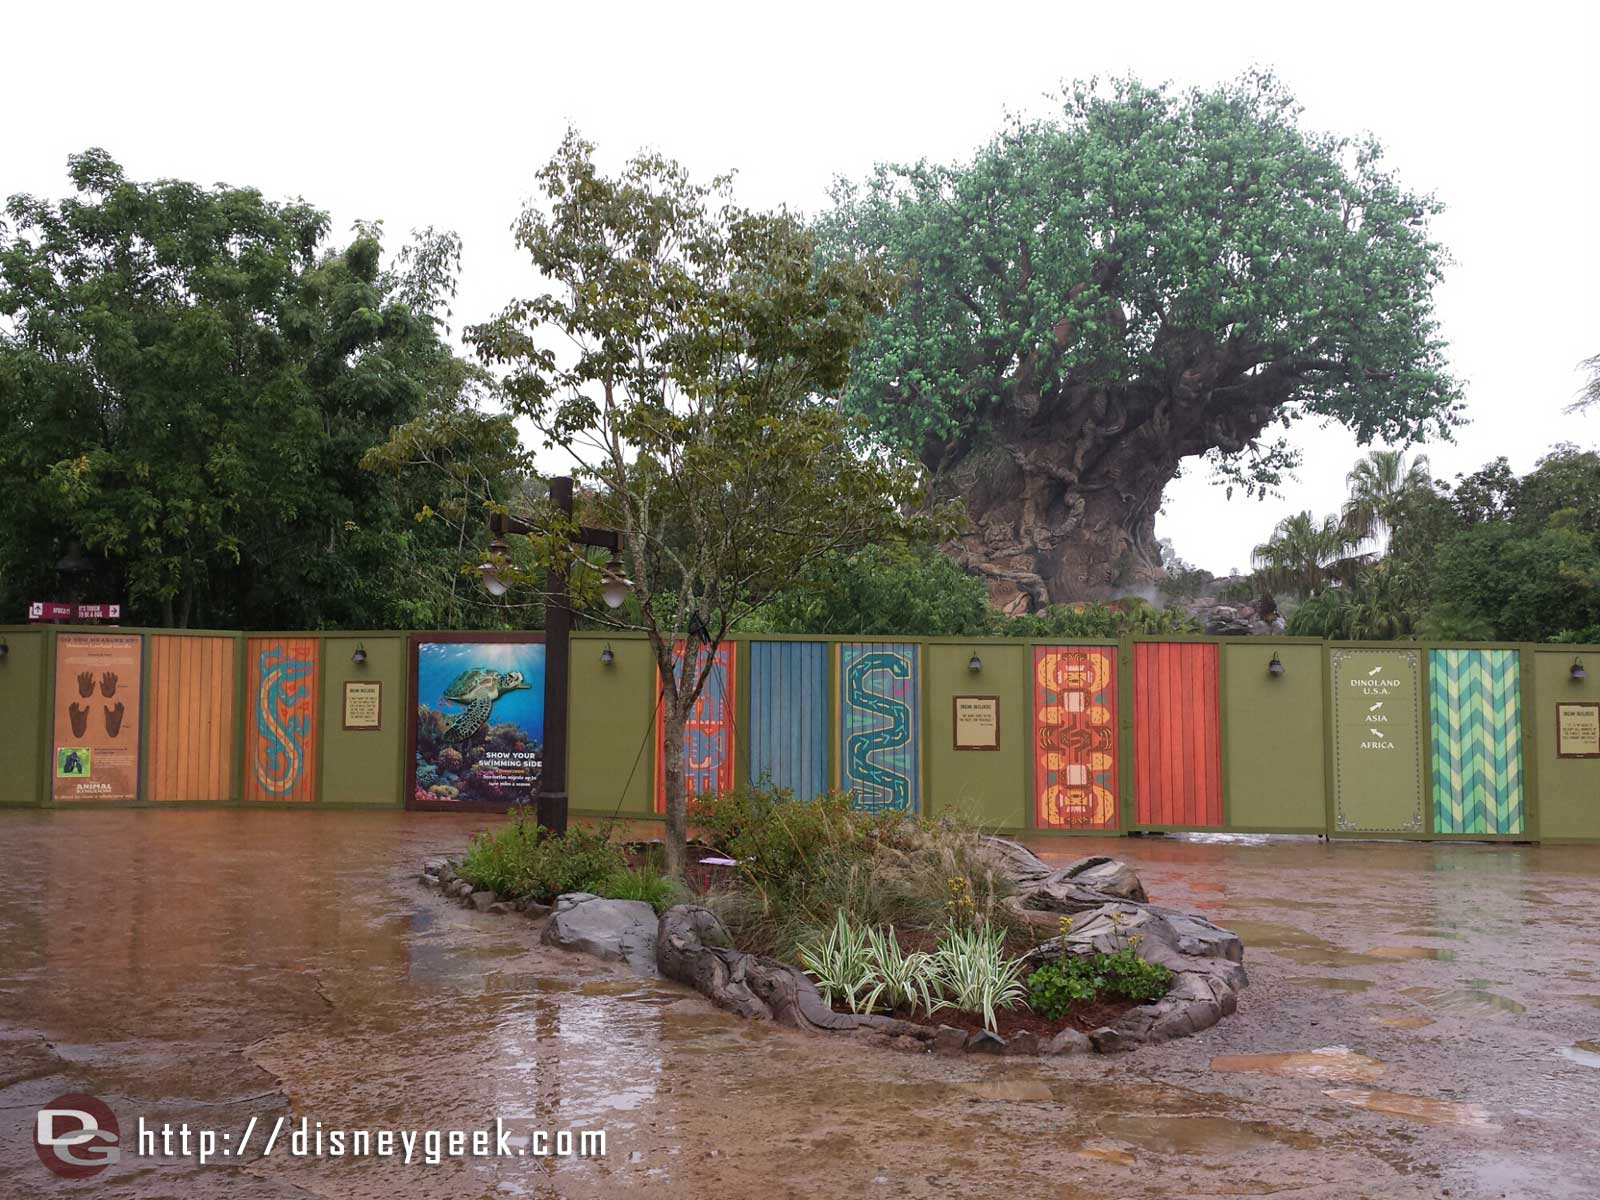 The Tree of Life plus construction walls as you enter the park #WDW